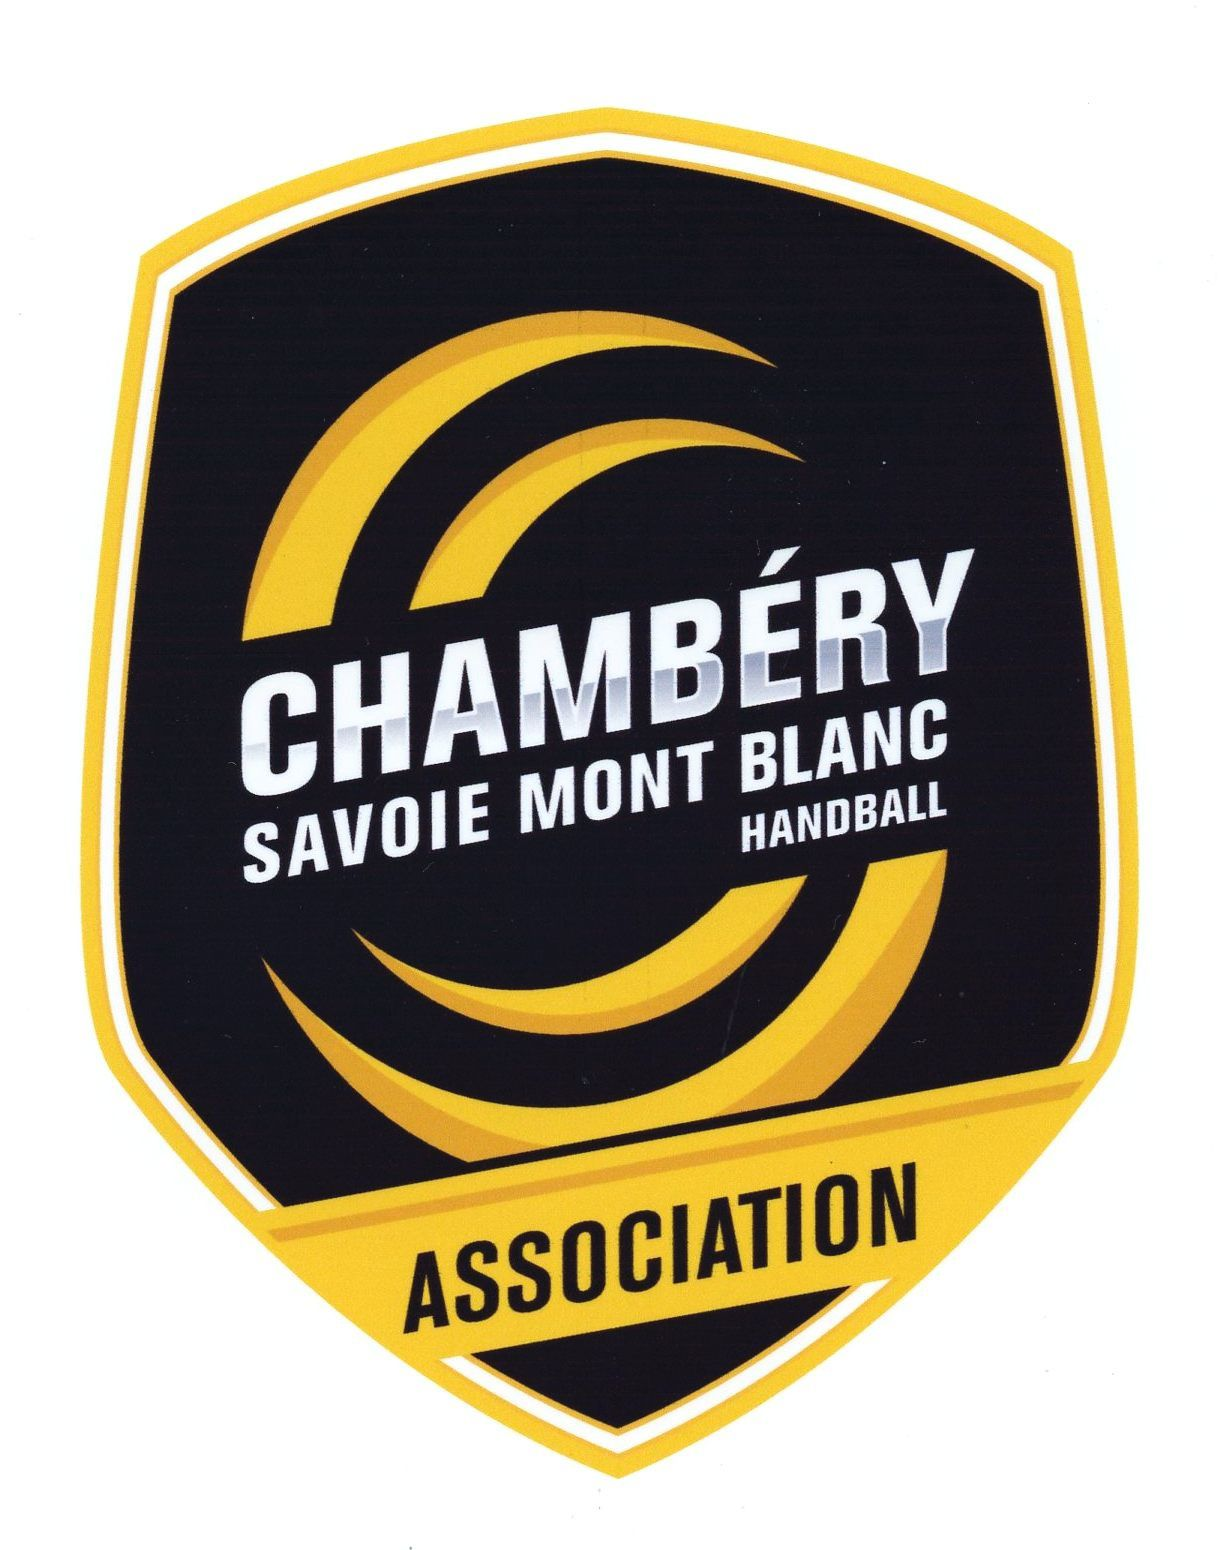 -18 France CHAMBERY - MONTELIMAR samedi 25 février 16 heures à Boutron 1